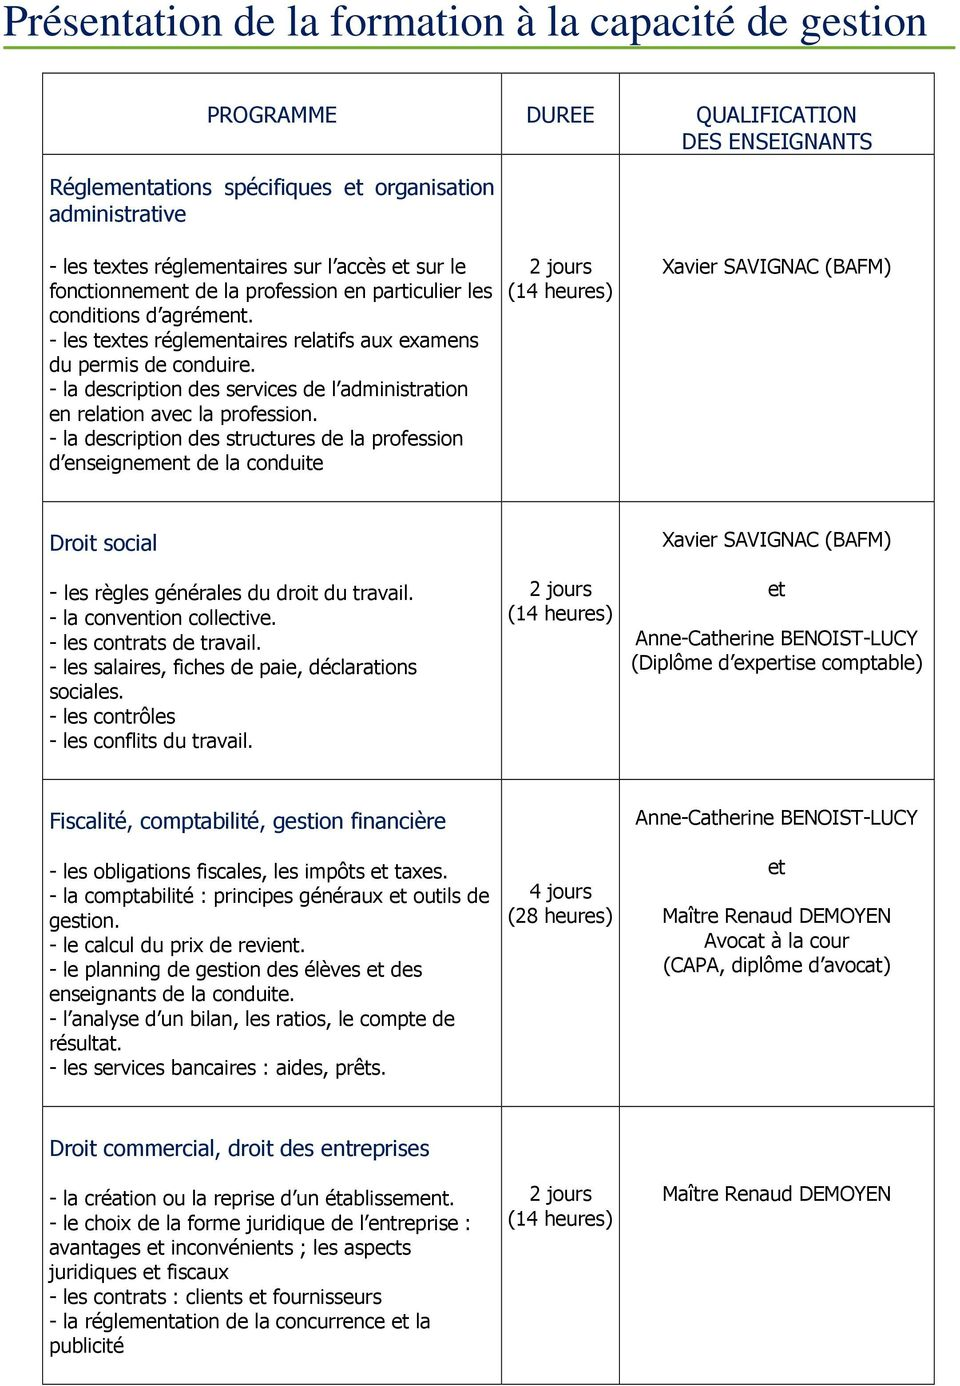 - la description des services de l administration en relation avec la profession.